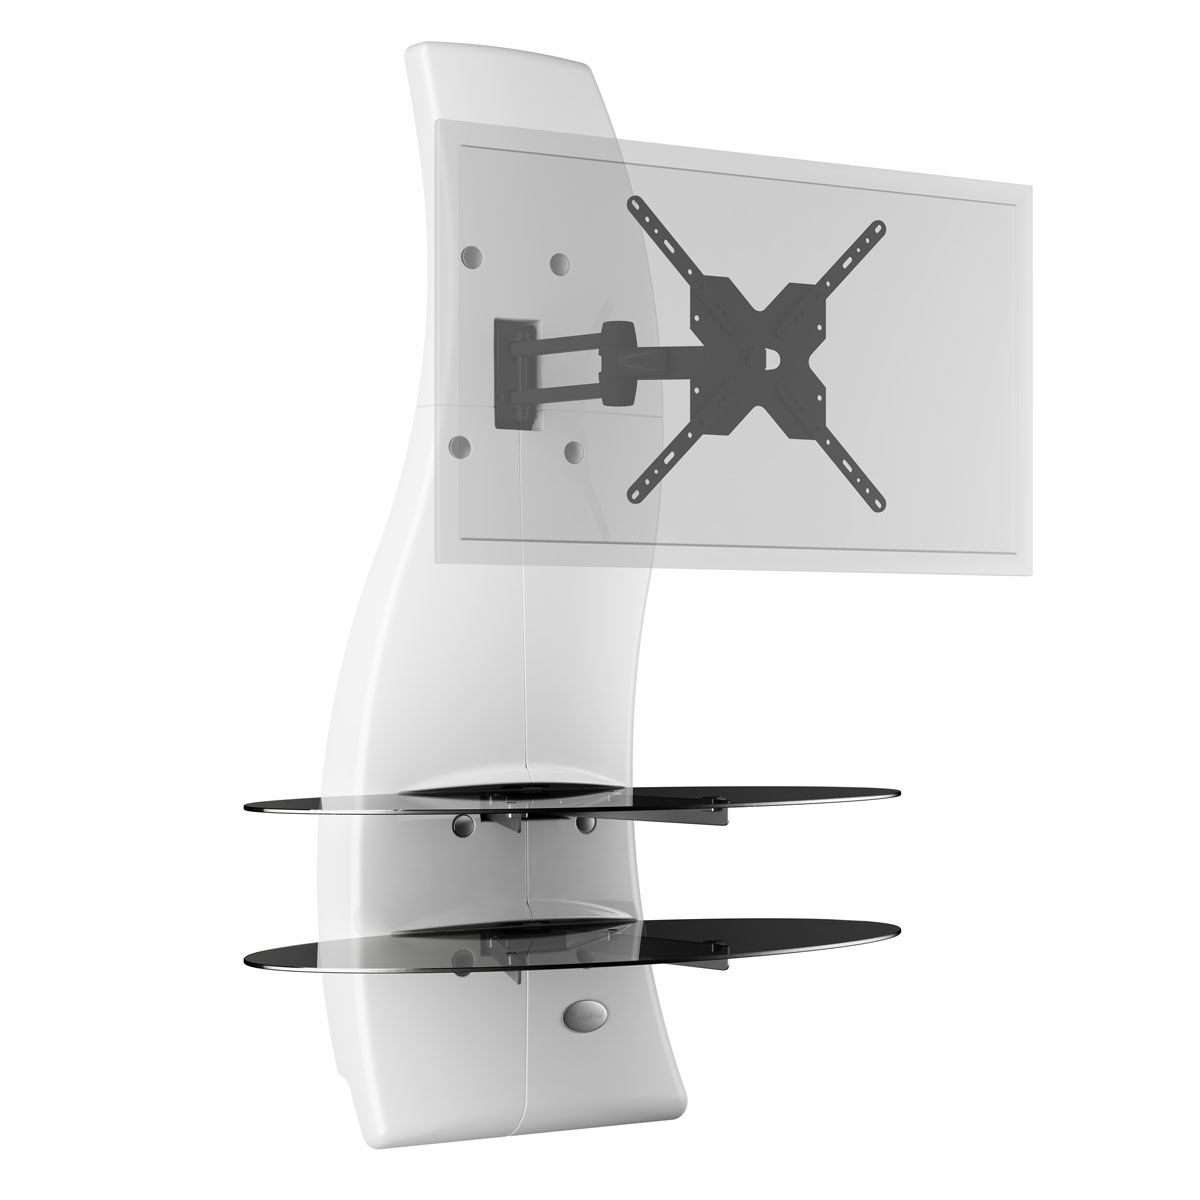 Meliconi ghost design 2000 rotation blanc meuble tv meliconi sur ldlc - Meuble tv support mural ...